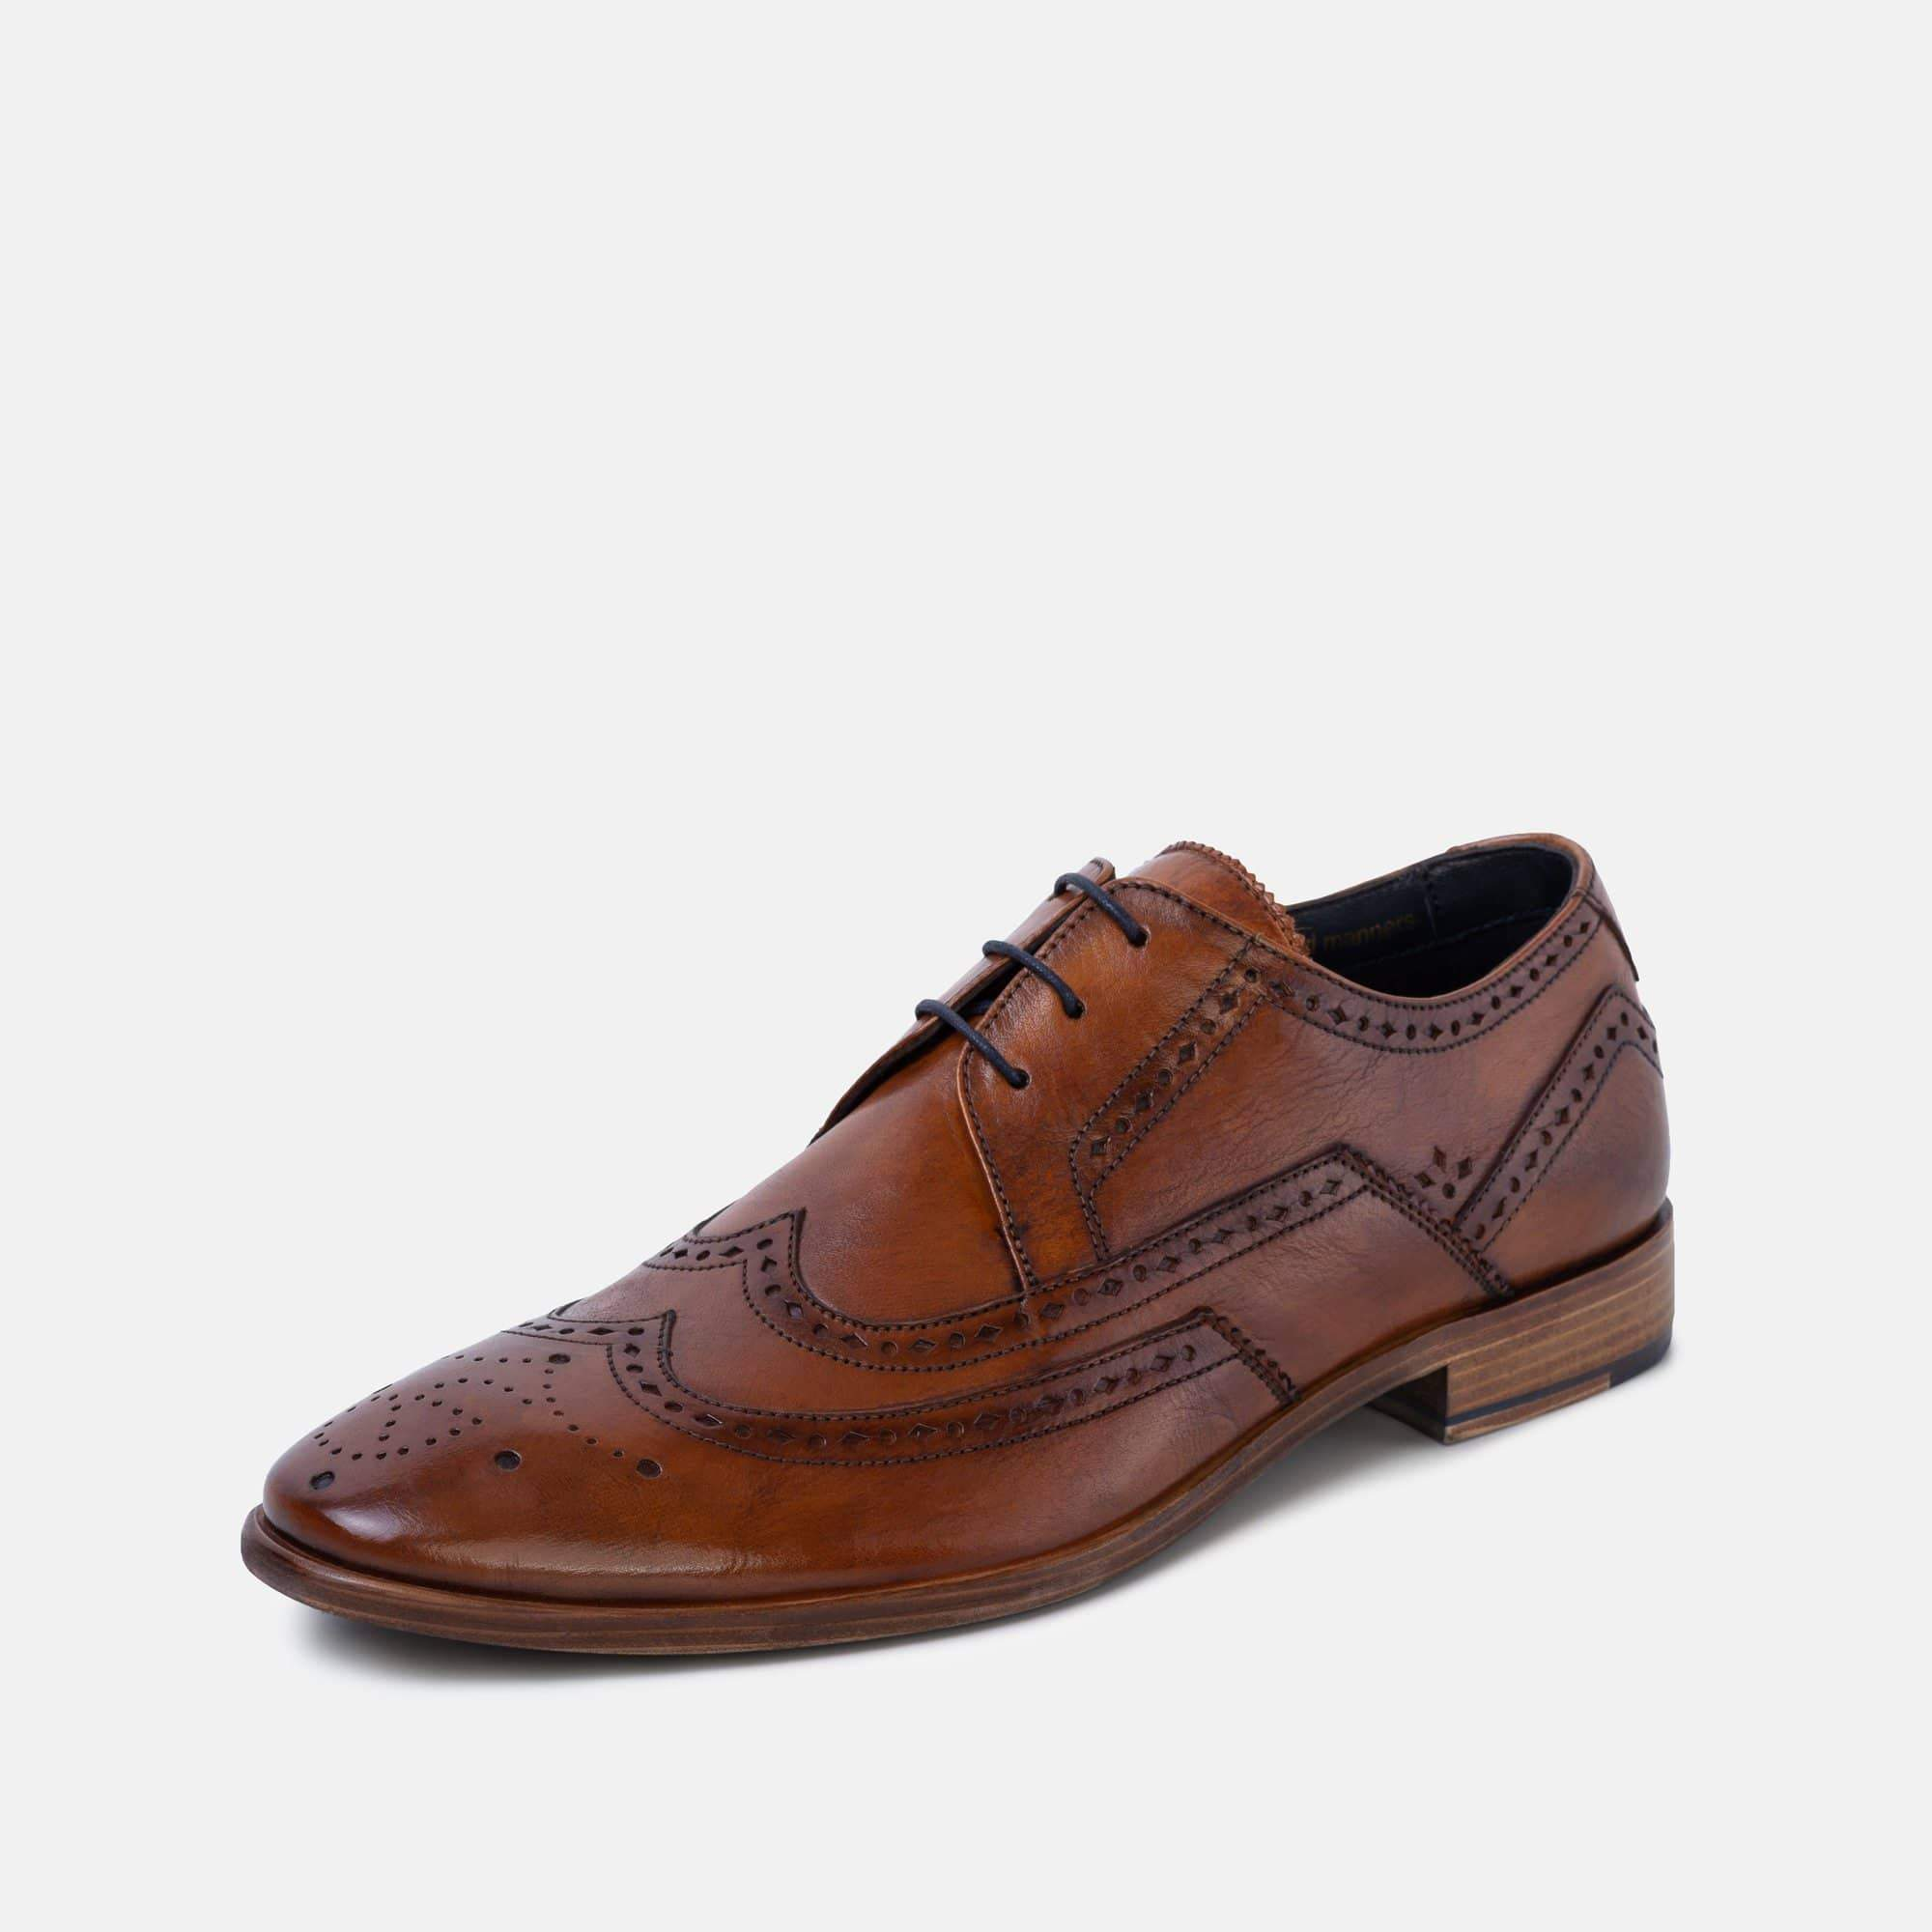 Tan rustic leather mens derby brogues with creased leather effect